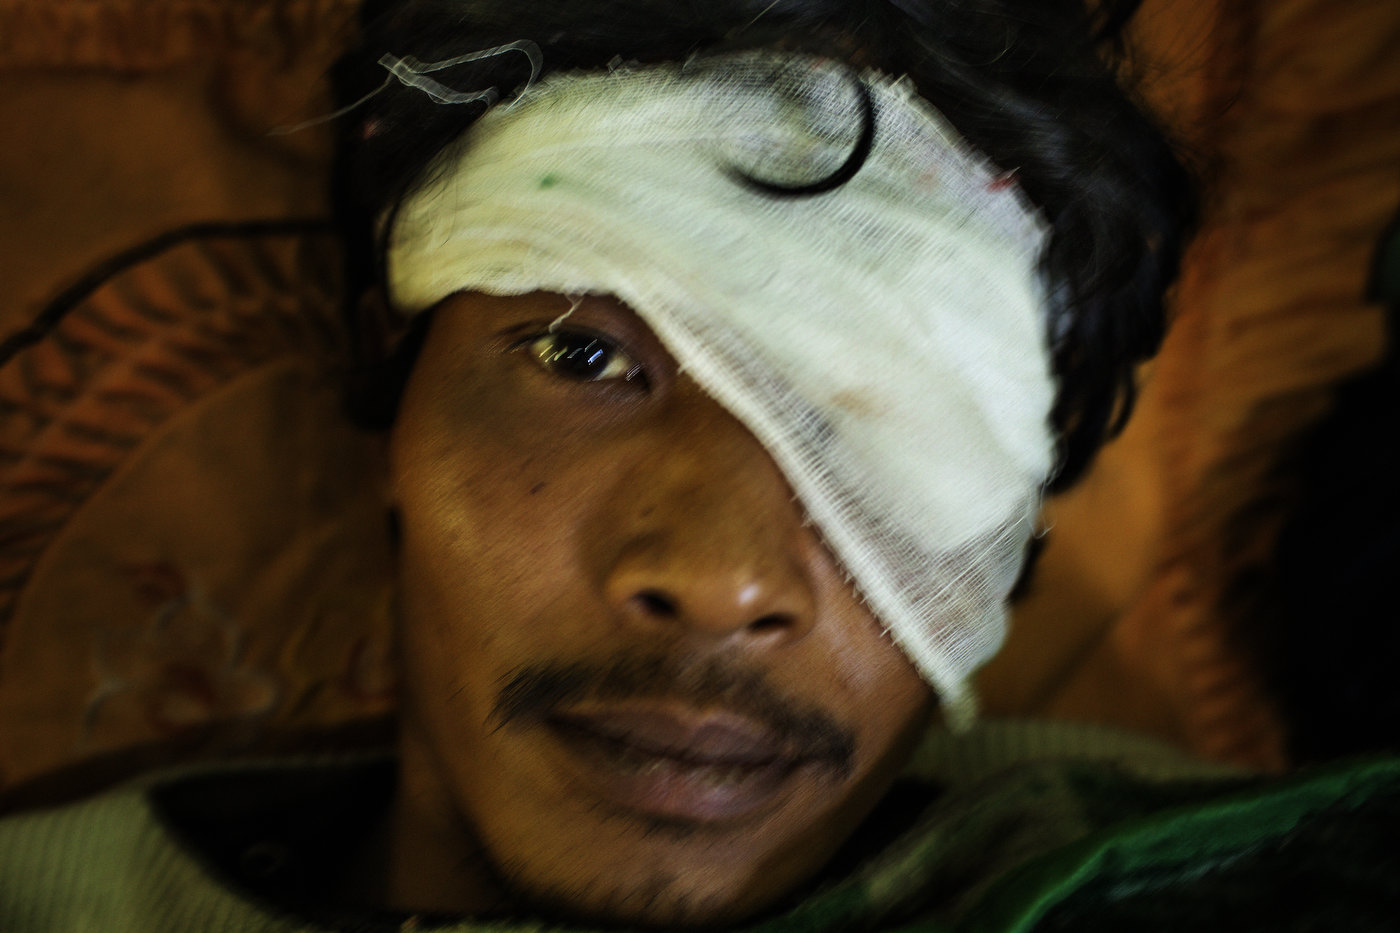 A battle-wounded Burmese Army prisoner held captive by the Kachin Independence Army (KIA) ally of the All Burma Student Democratic Front (ABSDF) lies in a small house at an outpost in Kachin State in northern Myanmar.